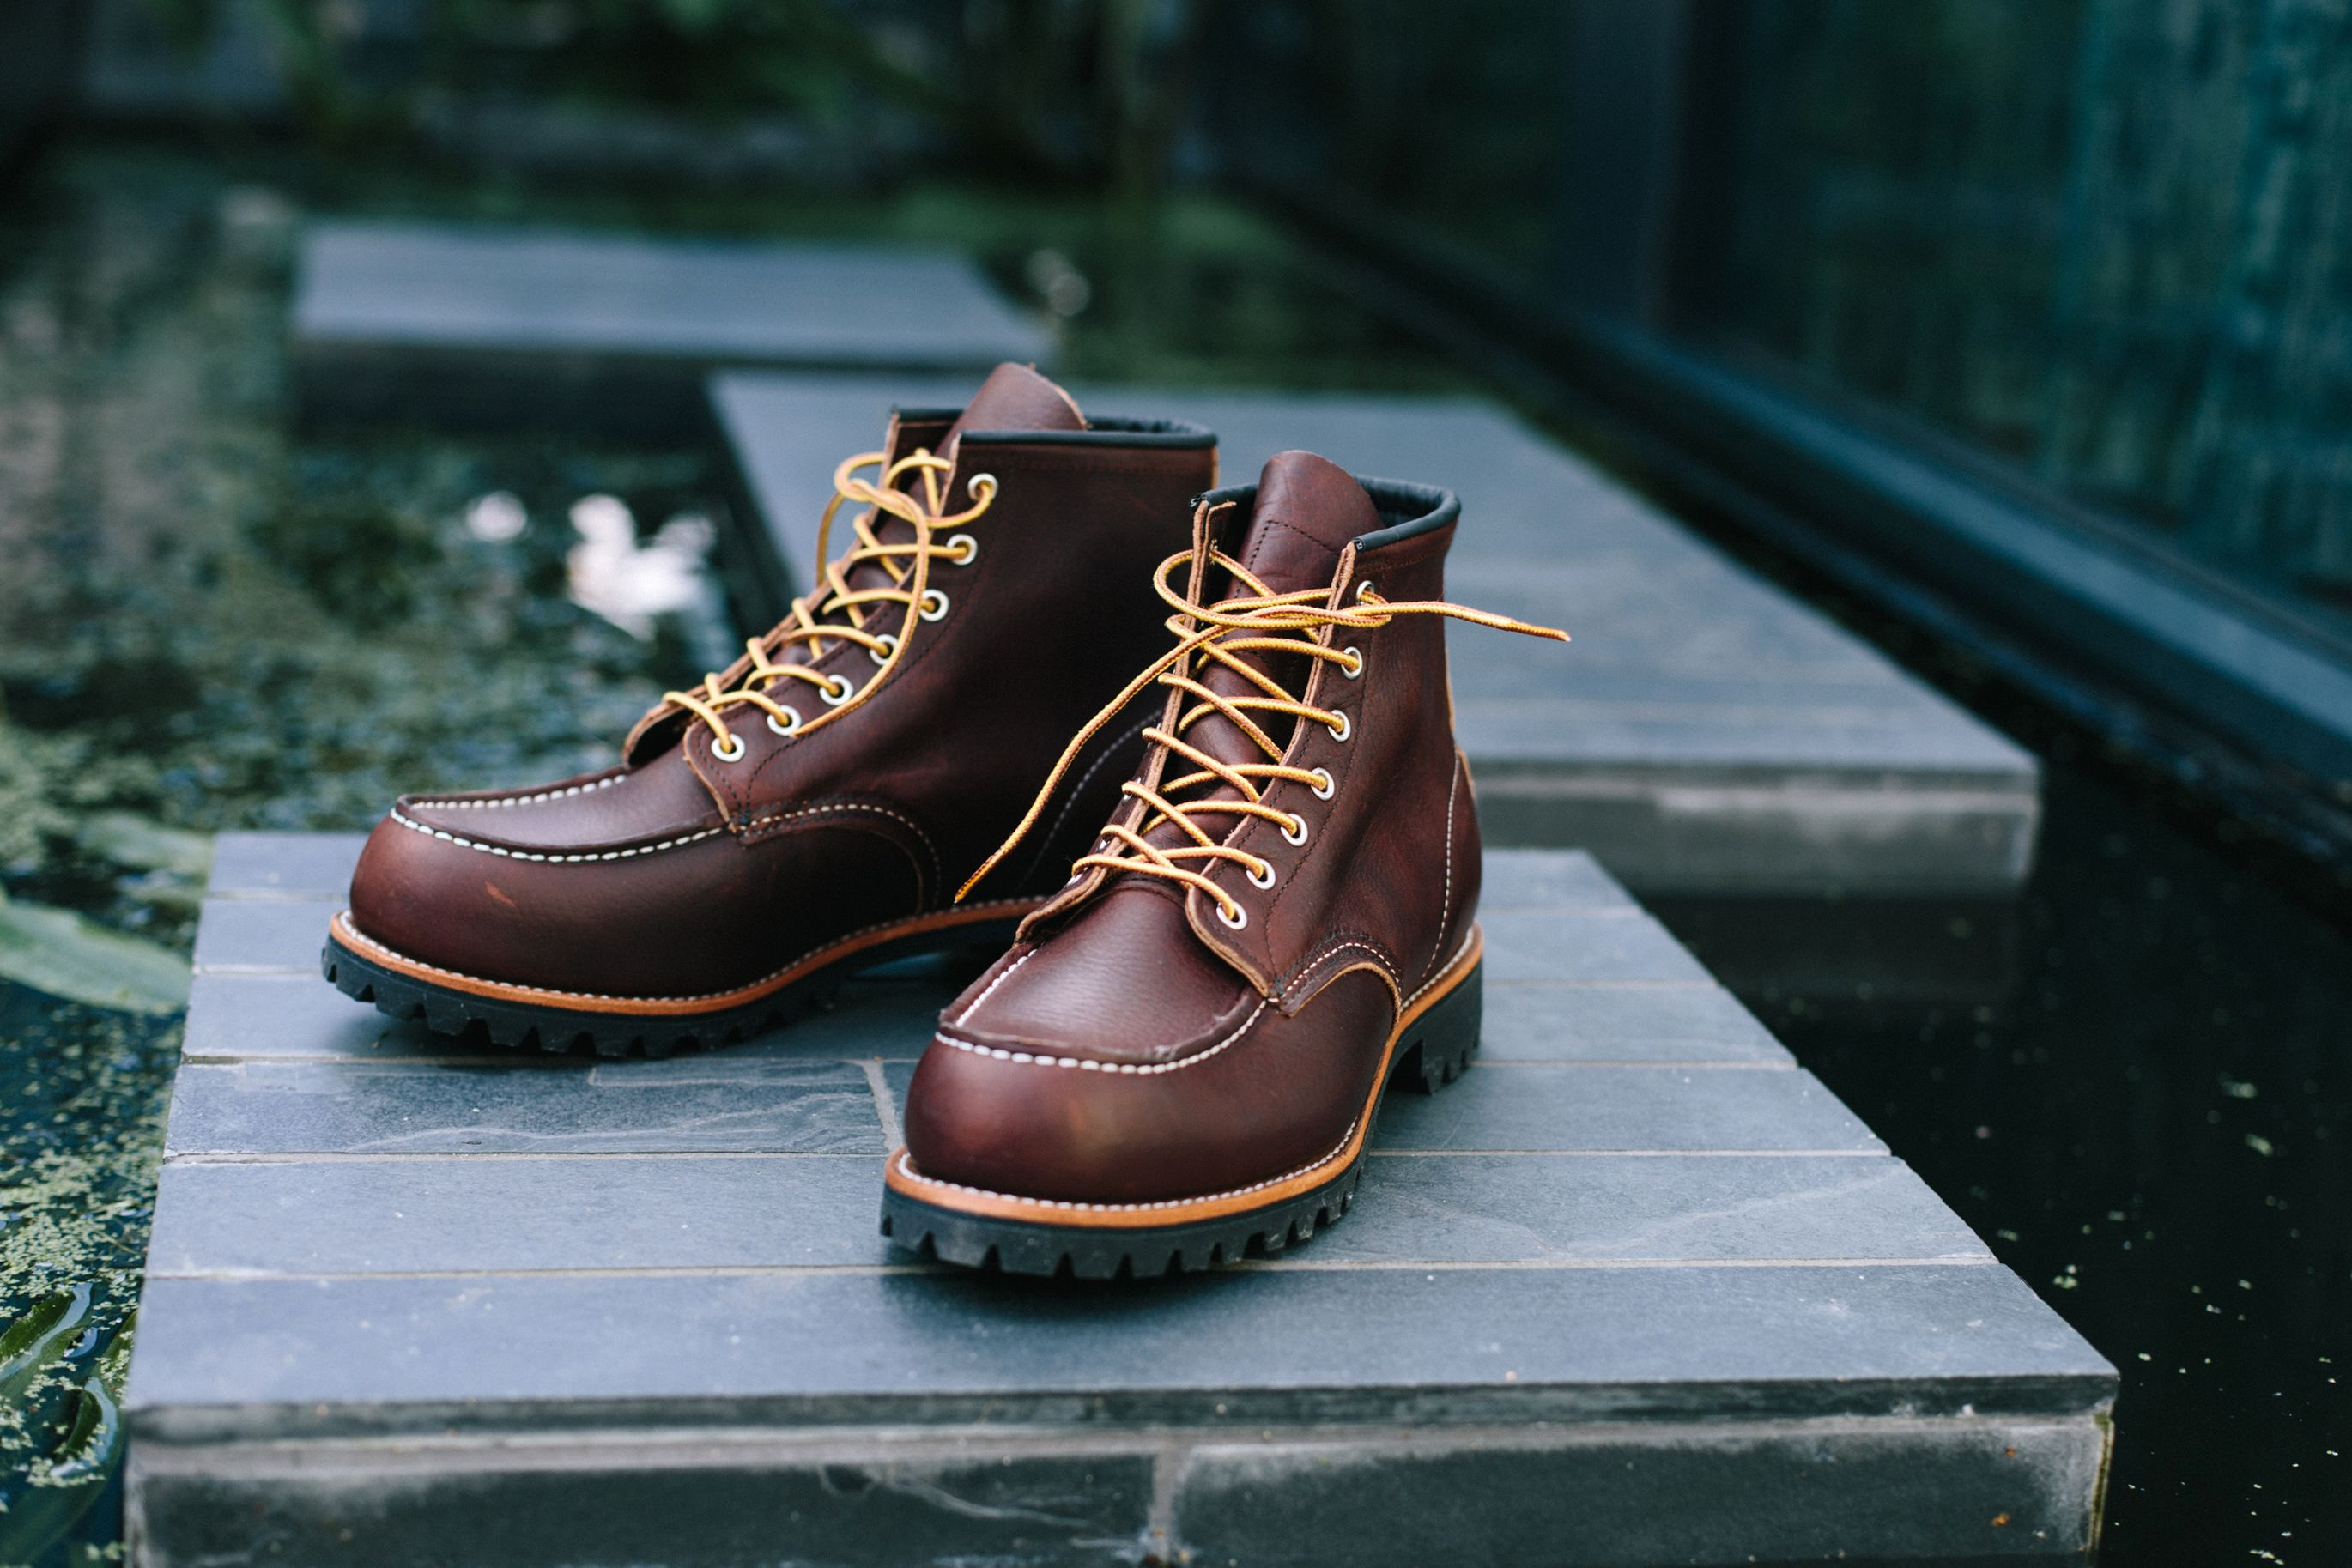 What are Red Wing work boots?